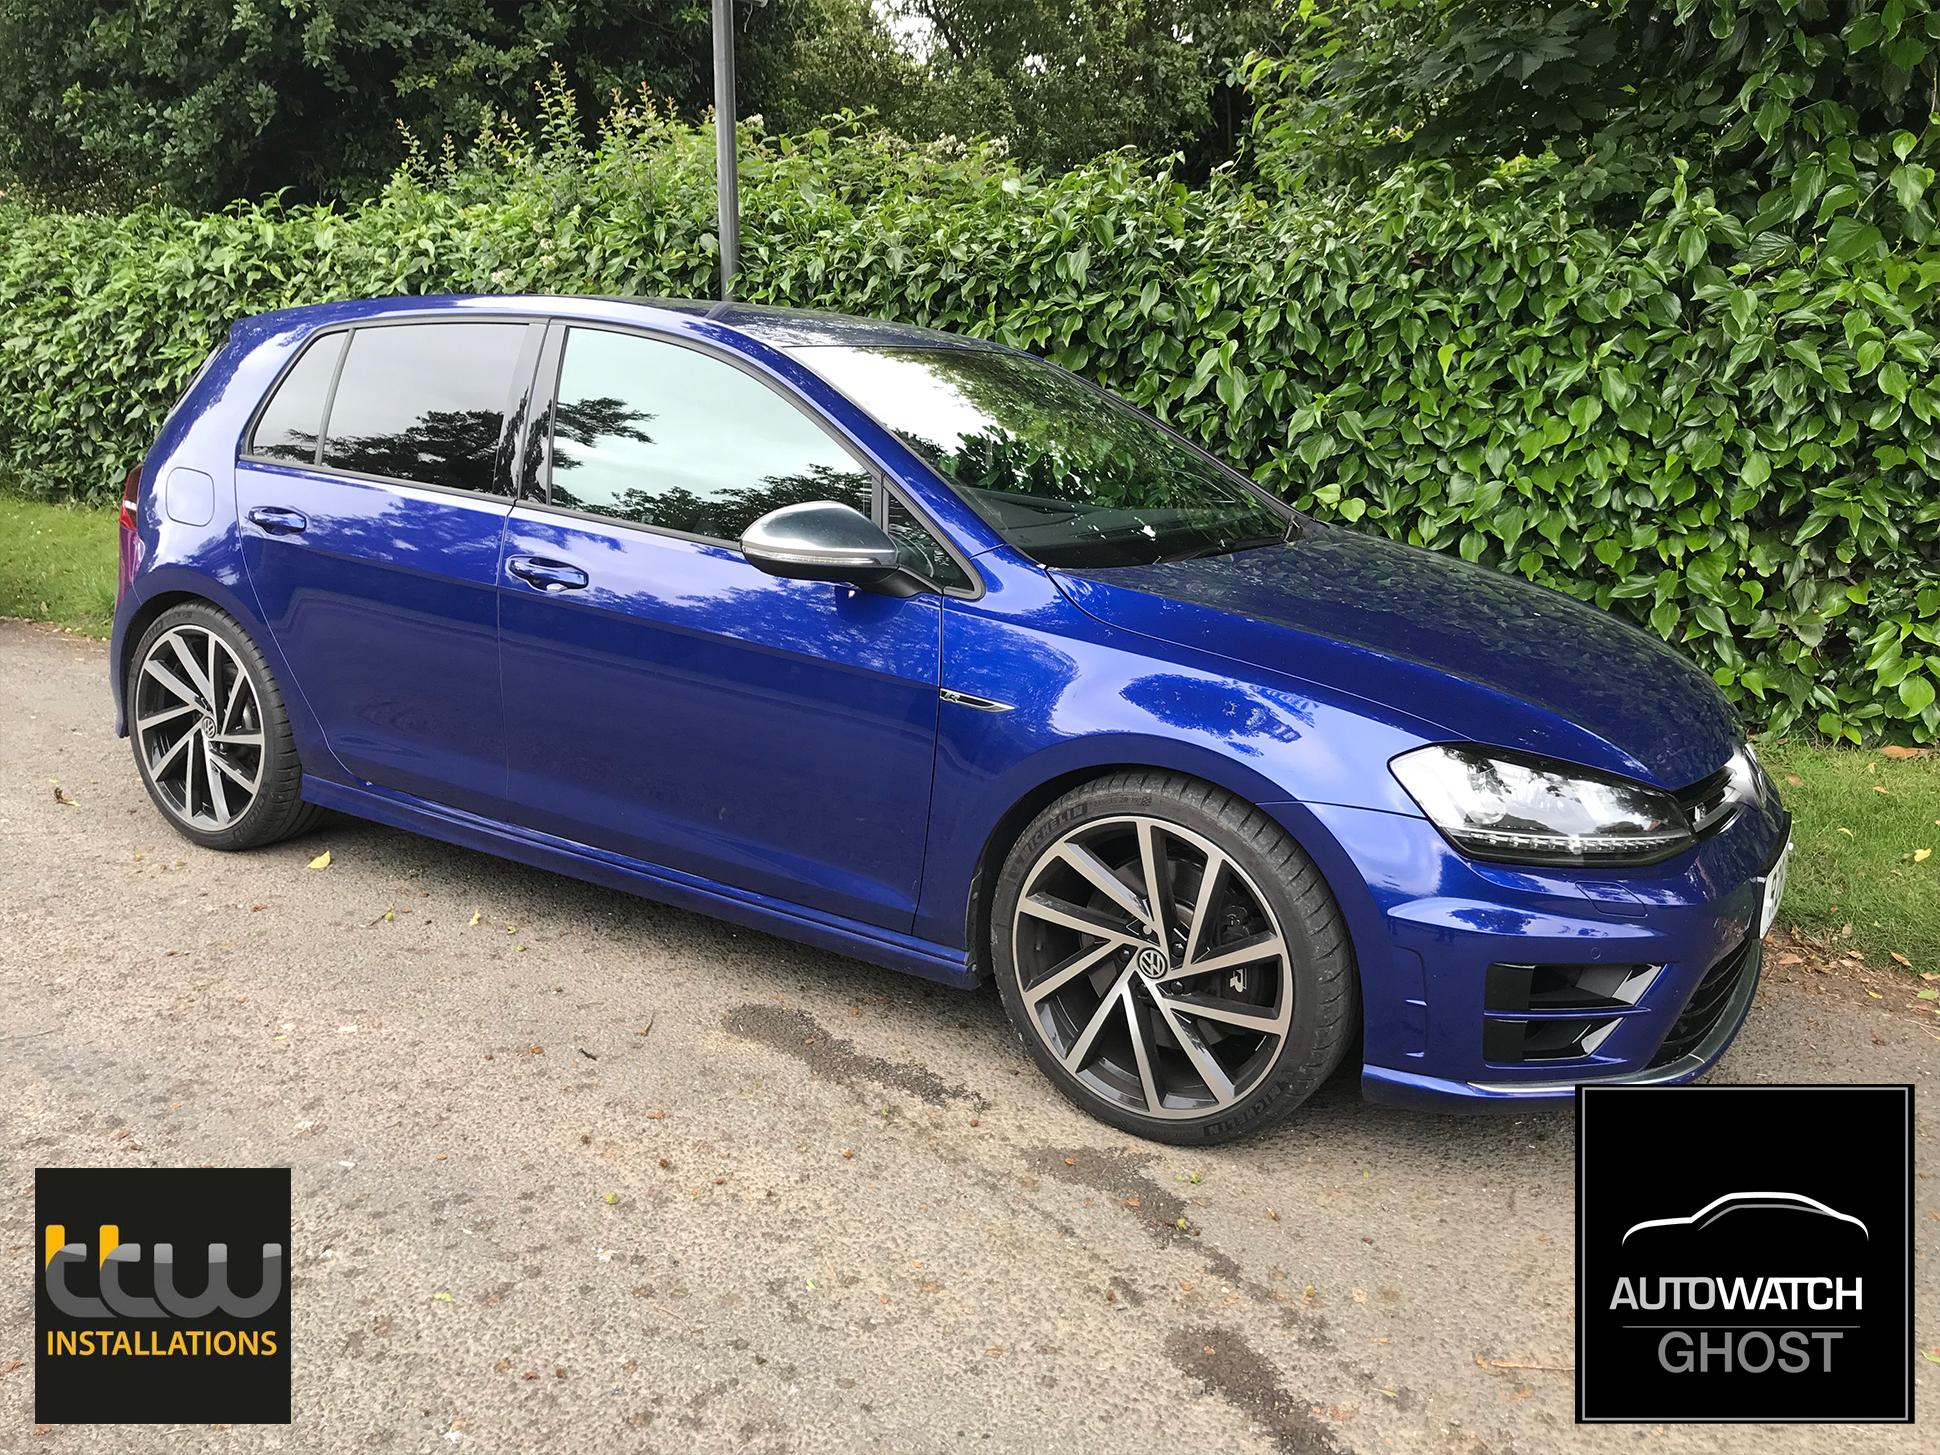 VW Golf R Autowatch Ghost 2 protected By TTW Installations